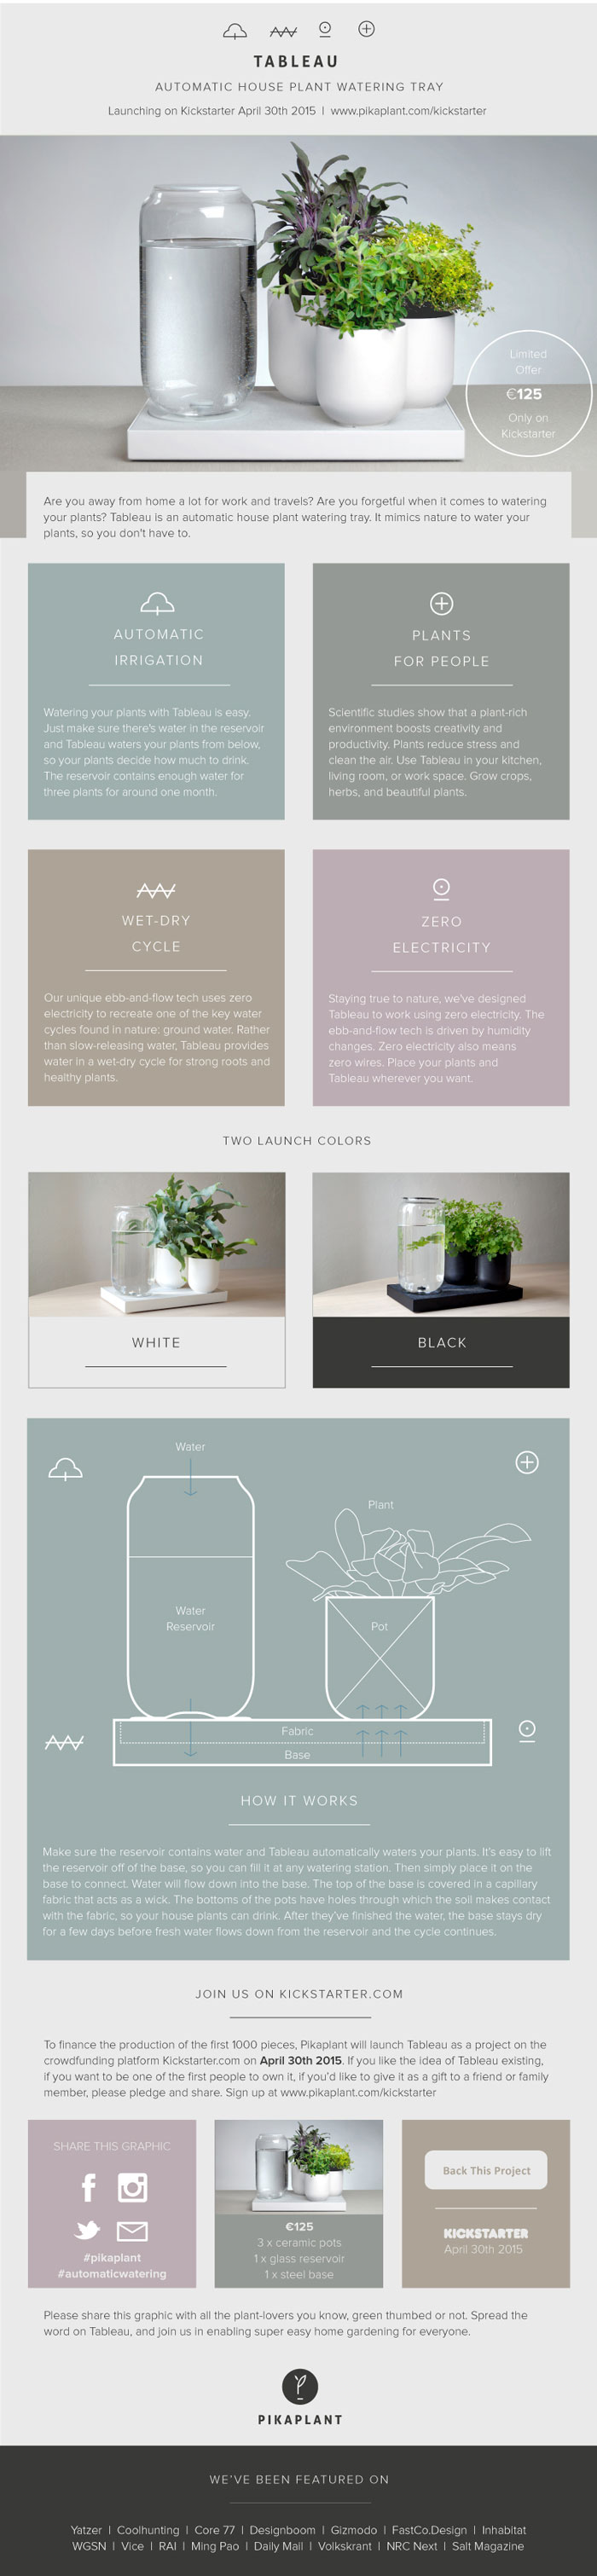 Tableau Automatic Houseplant Watering Tray by Pikaplant Infographic